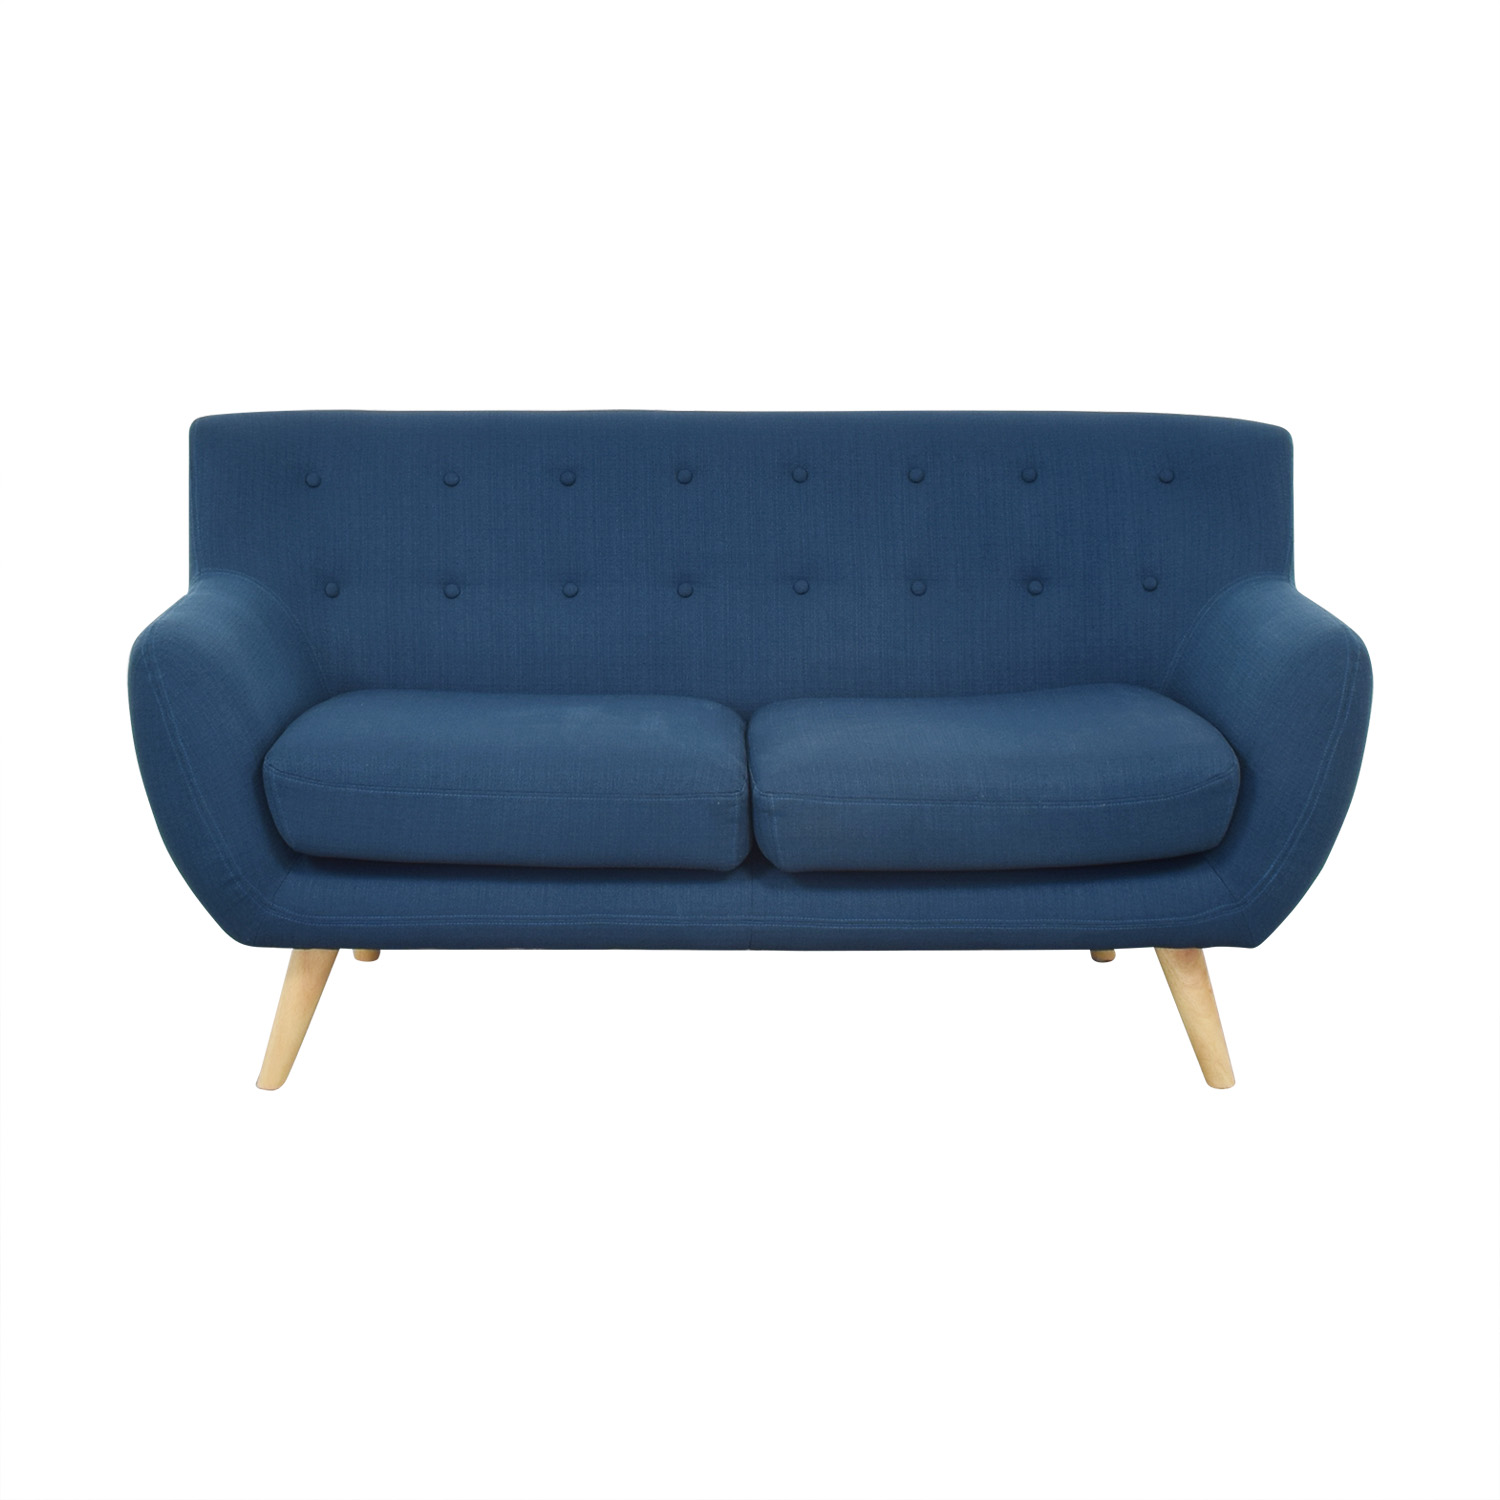 Langley Street Langley Street Meggie Loveseat on sale